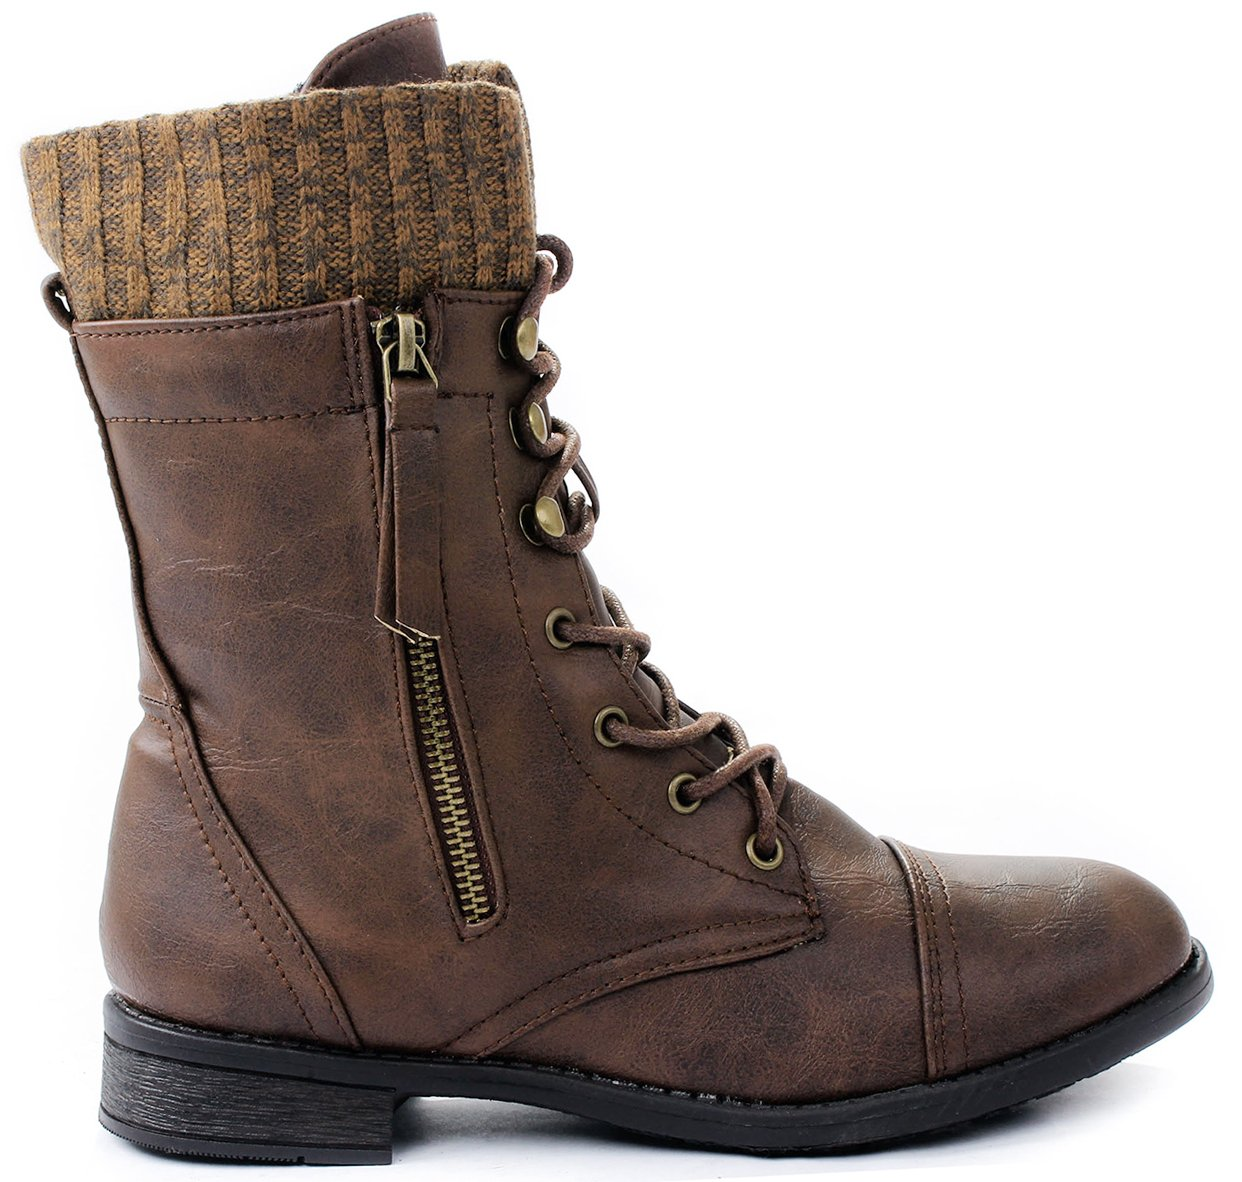 Women Justina58 Brown Leatherette Sweater Cuff Lace Up Decorative Zipper Mid Calf Ankle Combat Boots-8